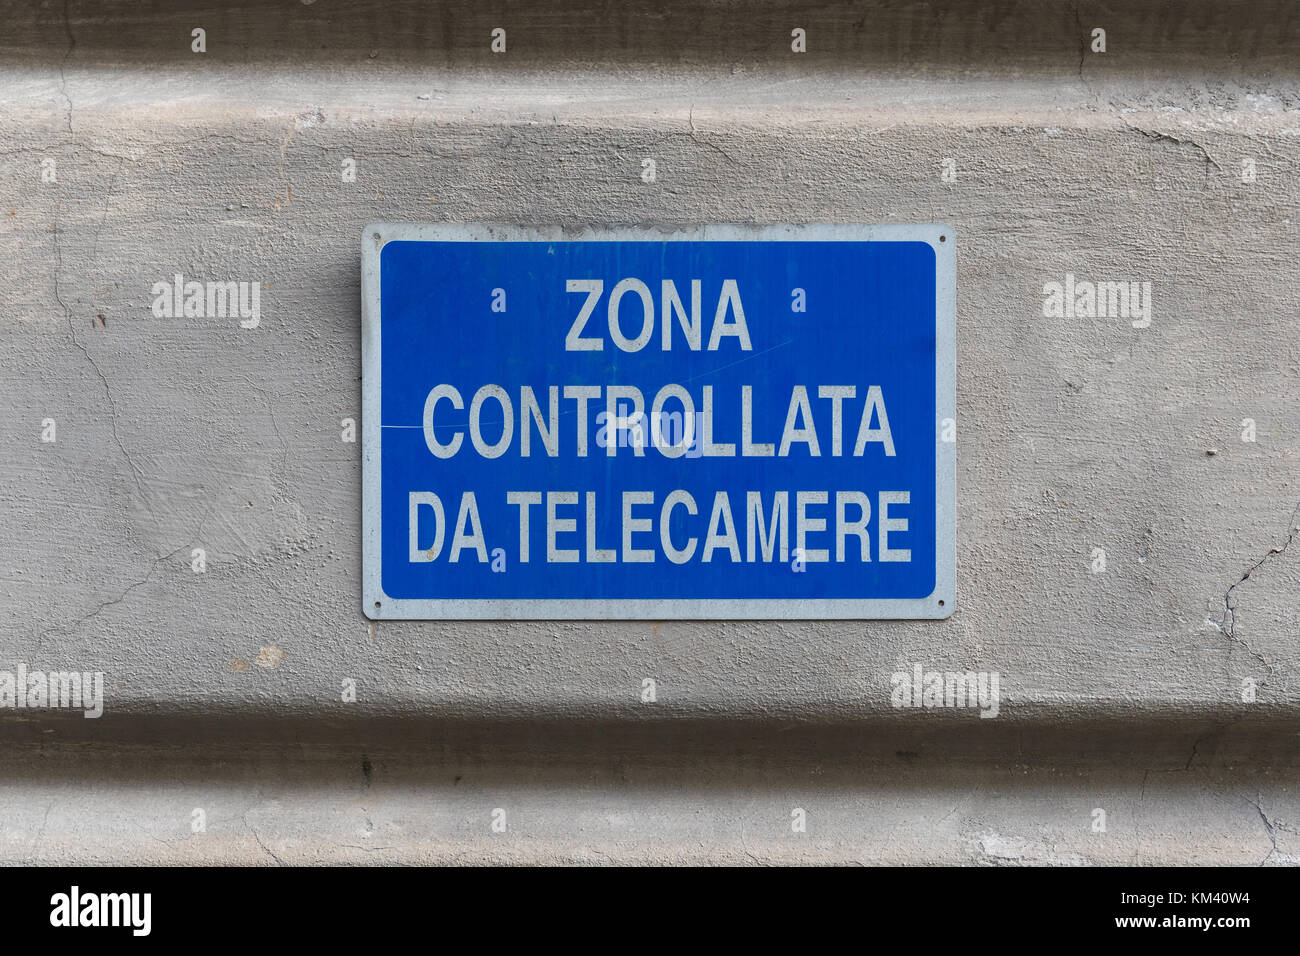 This area is under video surveillance sign in italian language Stock Photo